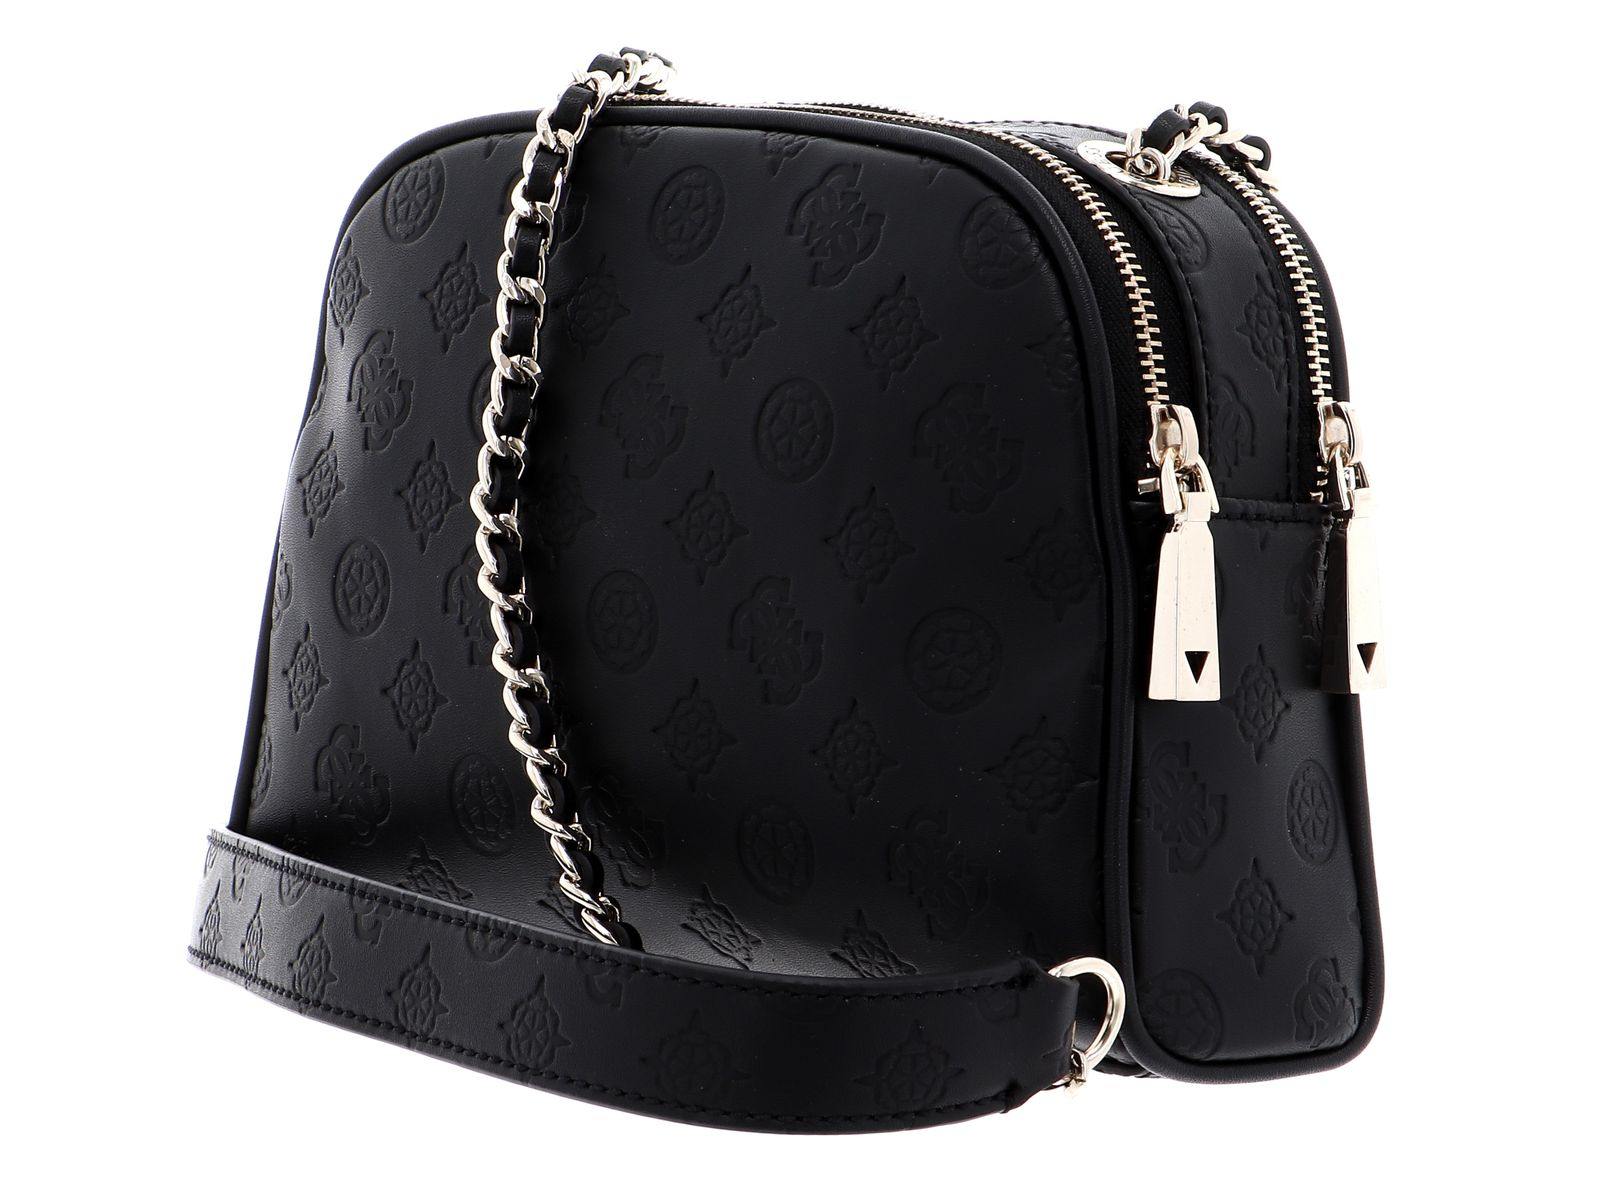 236 Best Guess!!! My Fav!!! images | Guess handbags, Bags